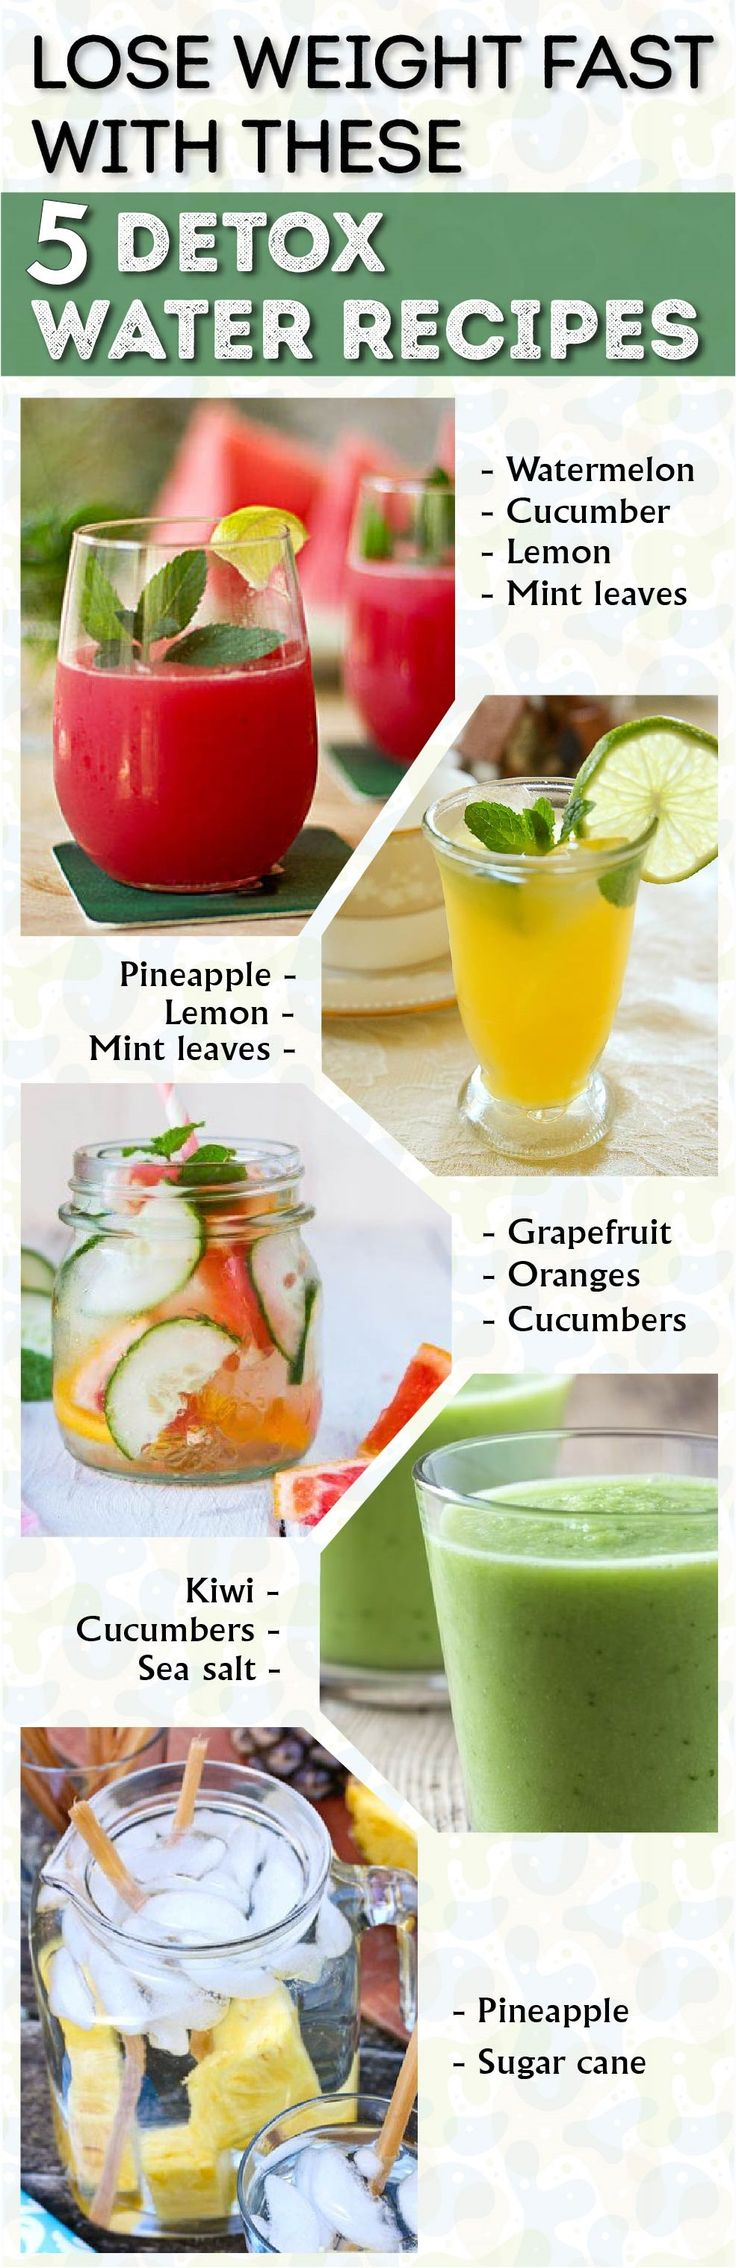 lose weight fast with these 5 detox water recipes sports pinterest ern hrung getr nke und. Black Bedroom Furniture Sets. Home Design Ideas